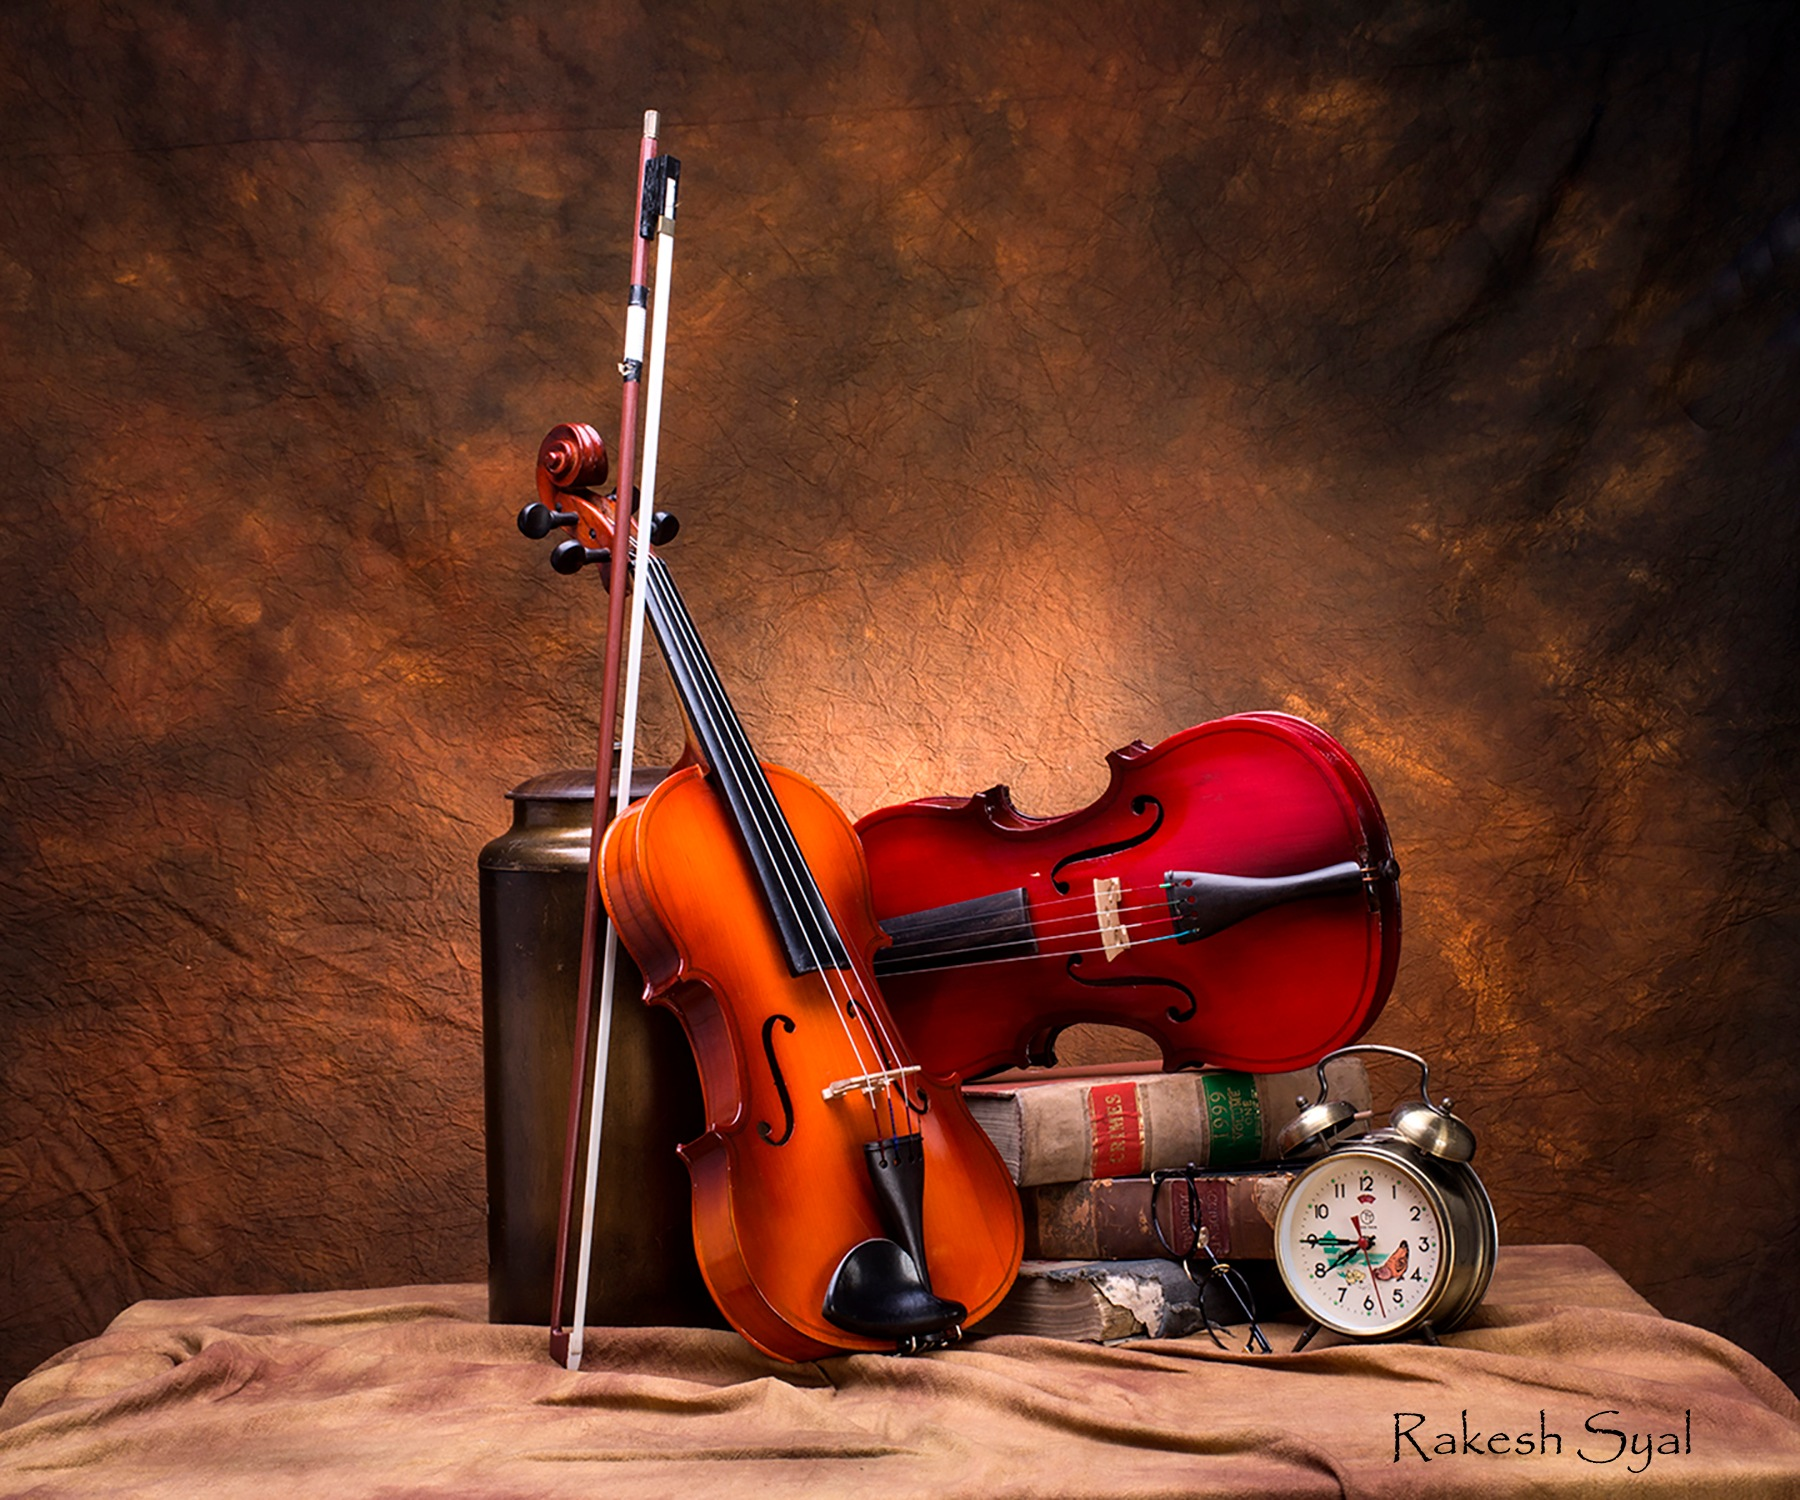 STILL LIFE WITH VIOLINS by Rakesh Syal